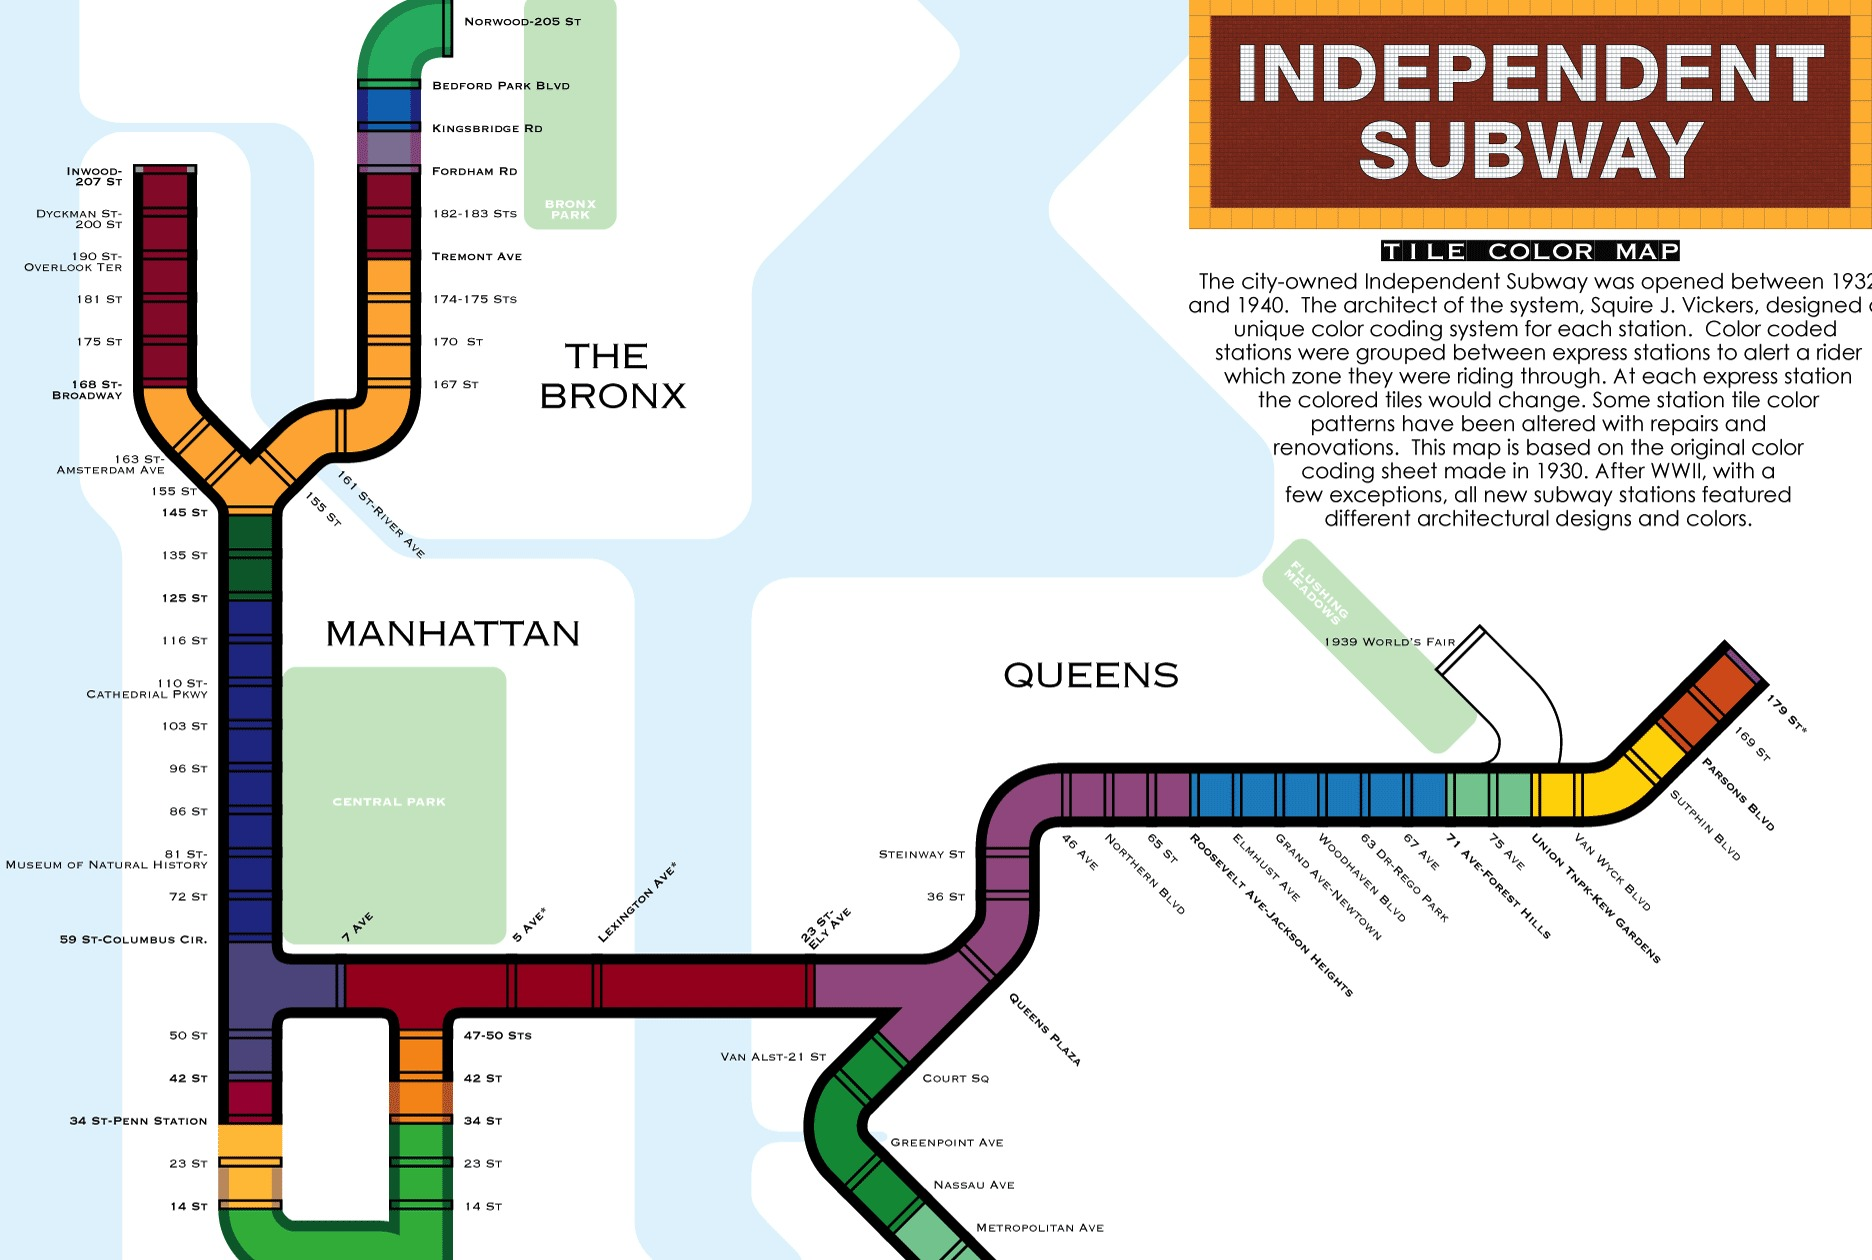 Nyc Subway Map Over Street Map.This Map Explains The Historic Tile Color System Used In Nyc Subway